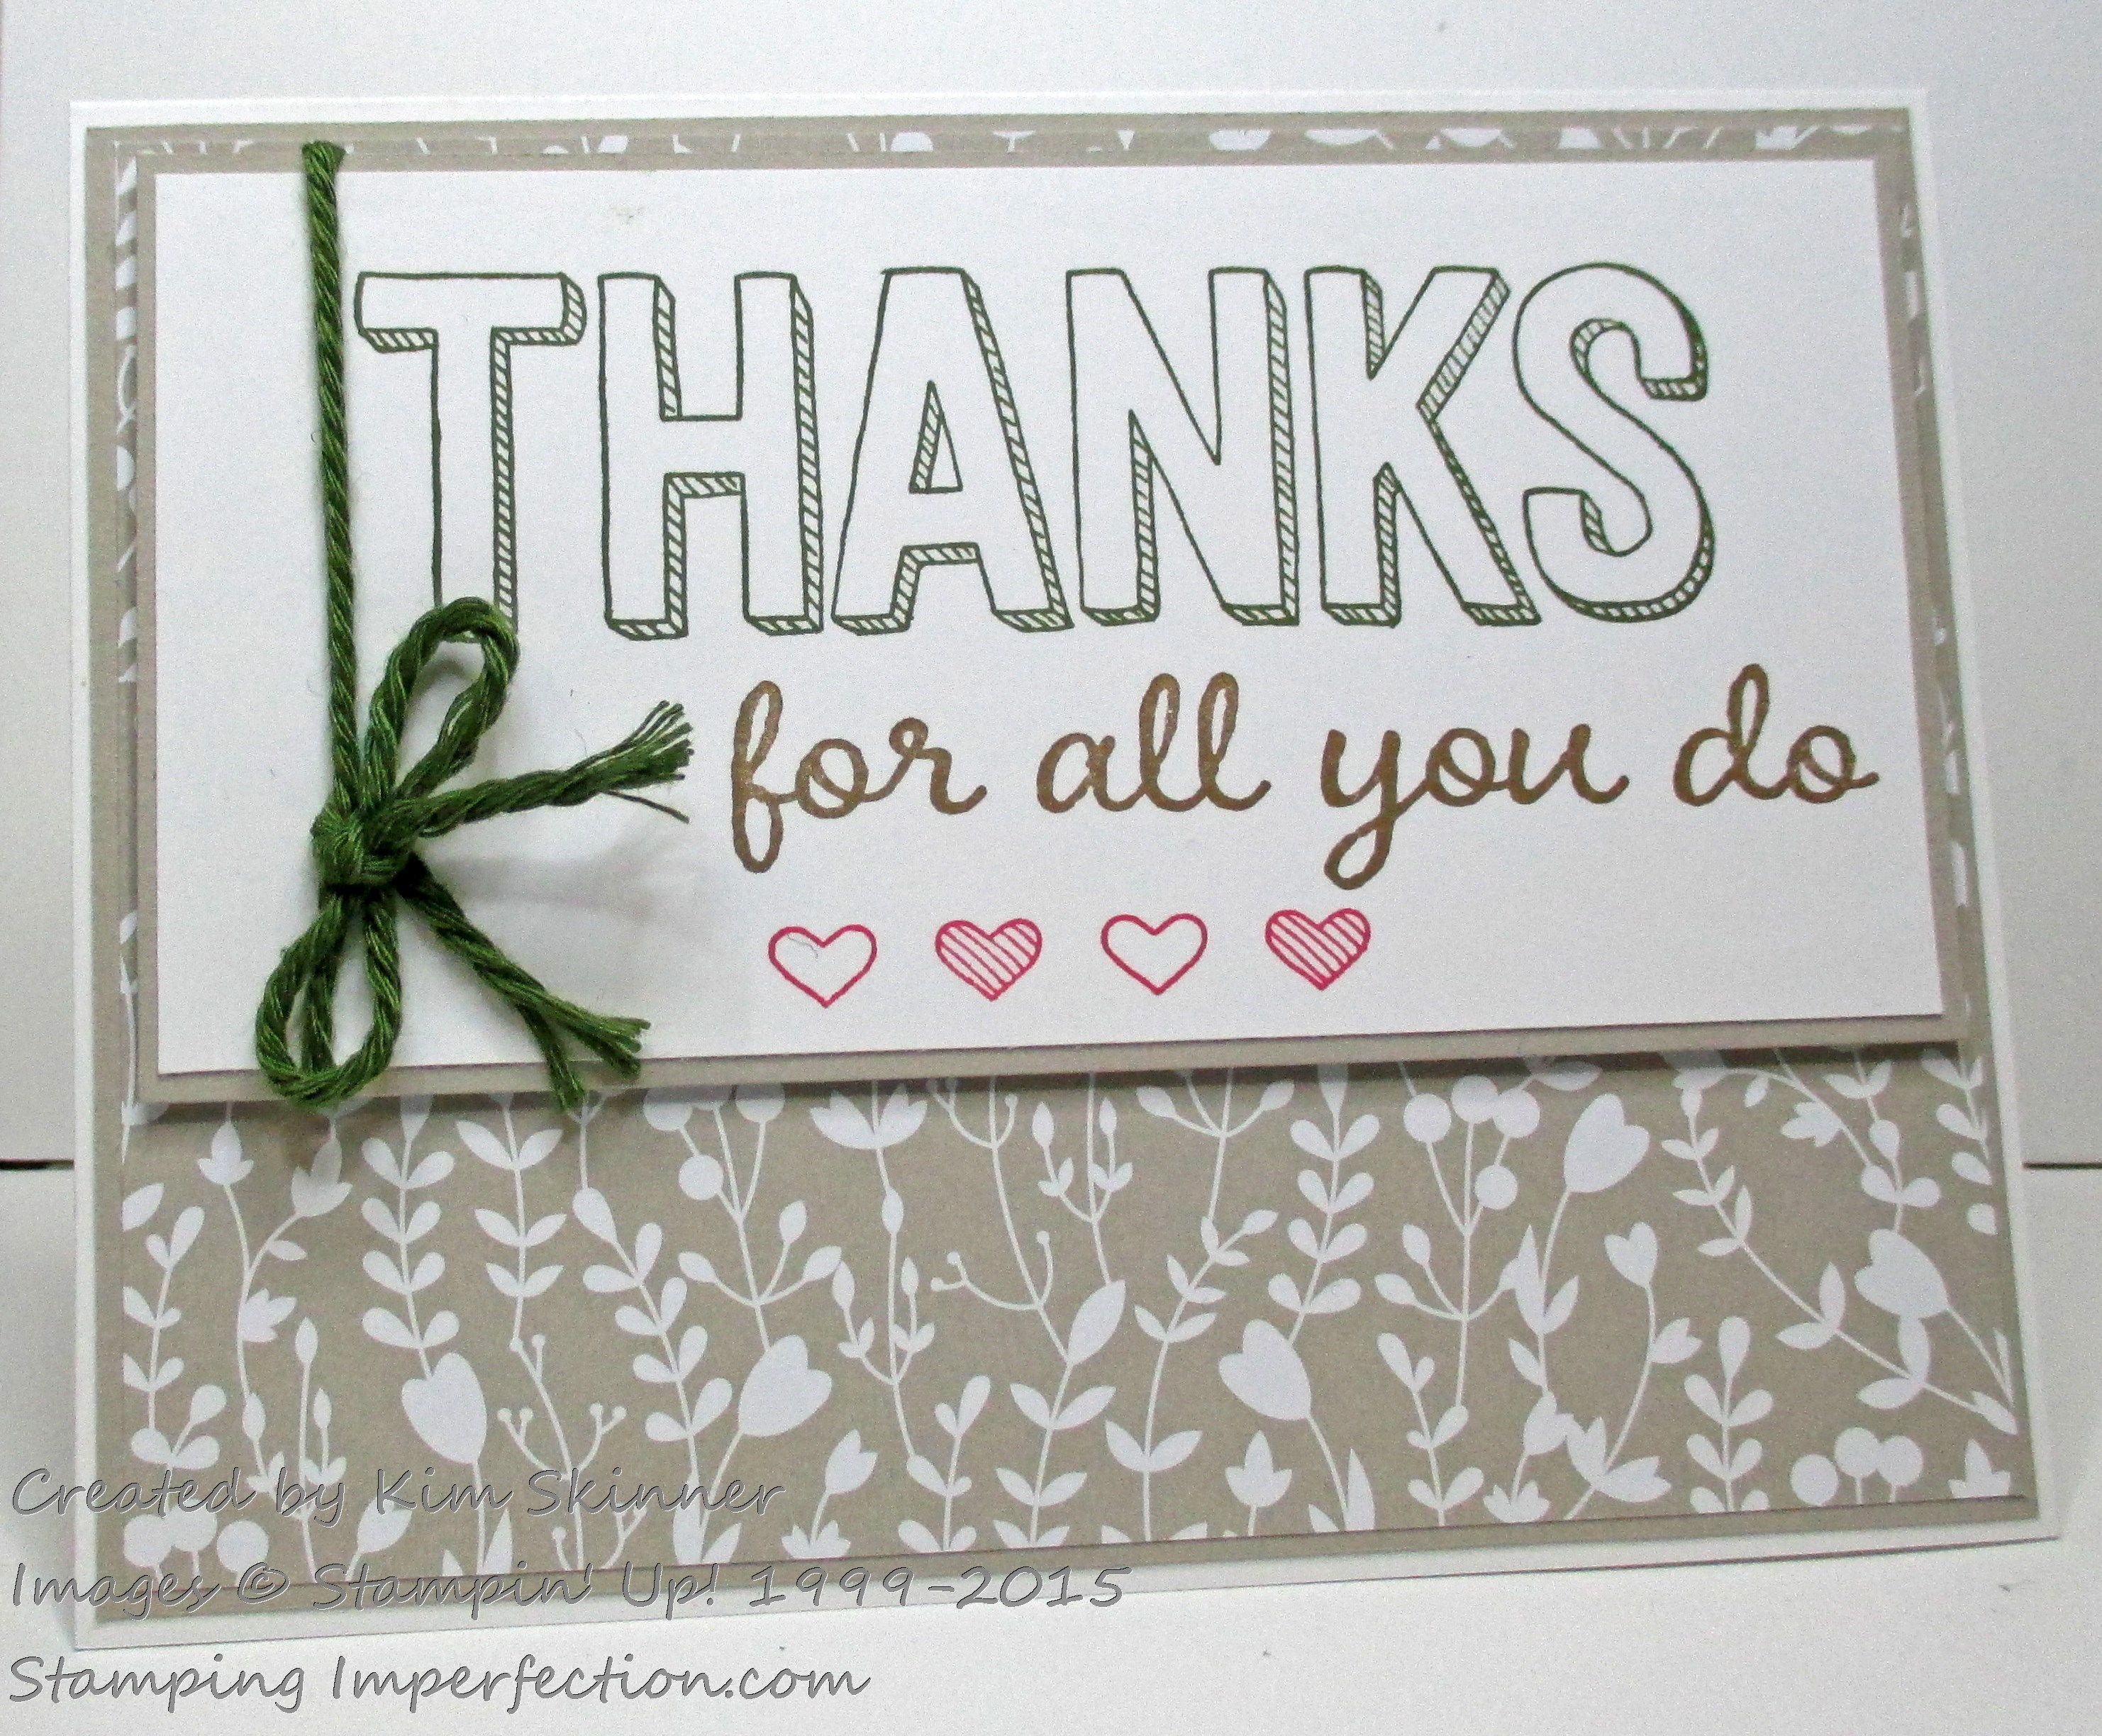 New Sale-A-Bration Items Available Until The End Of March! For All You Do with Stamping Imperfection